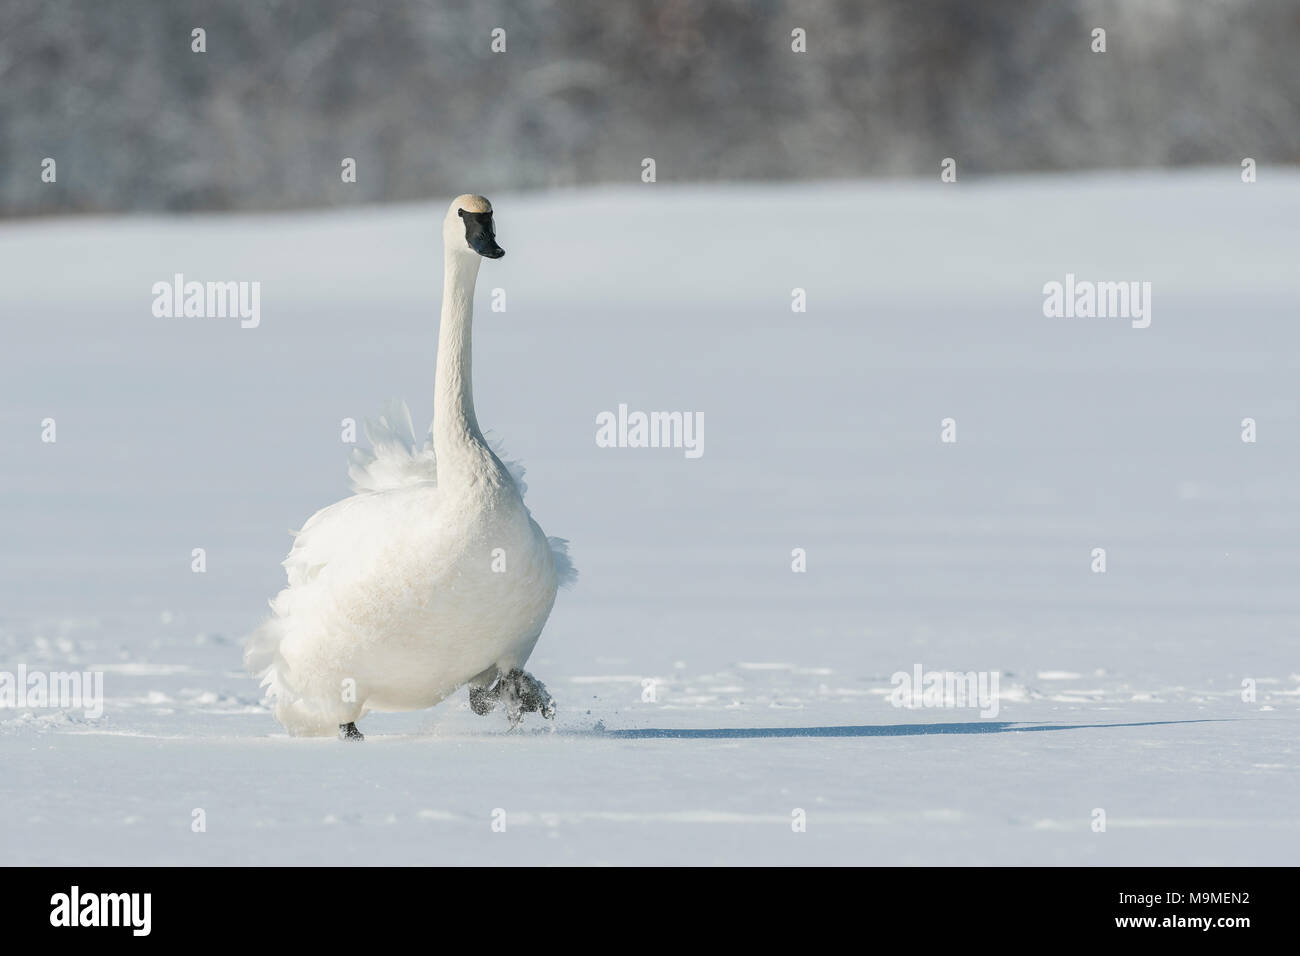 Trumpeter swan (Cygnus buccinator) walking on the frozen St. Croix river.  Hudson, Wisconsin. Late February. - Stock Image